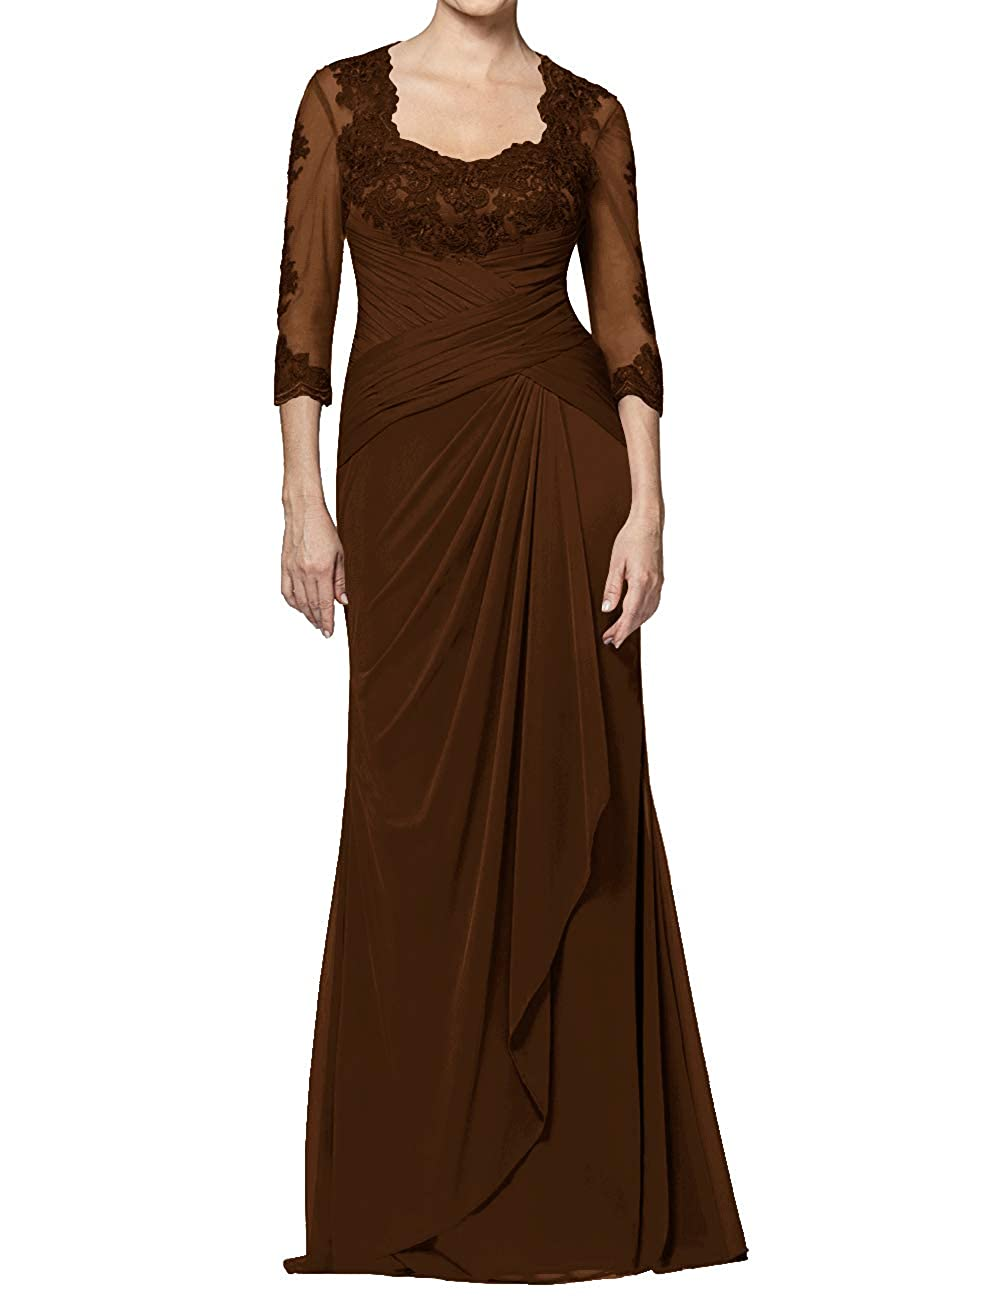 Chocolate Mother of The Bride Dresses Long Appliques Evening Party Prom Gown for Women